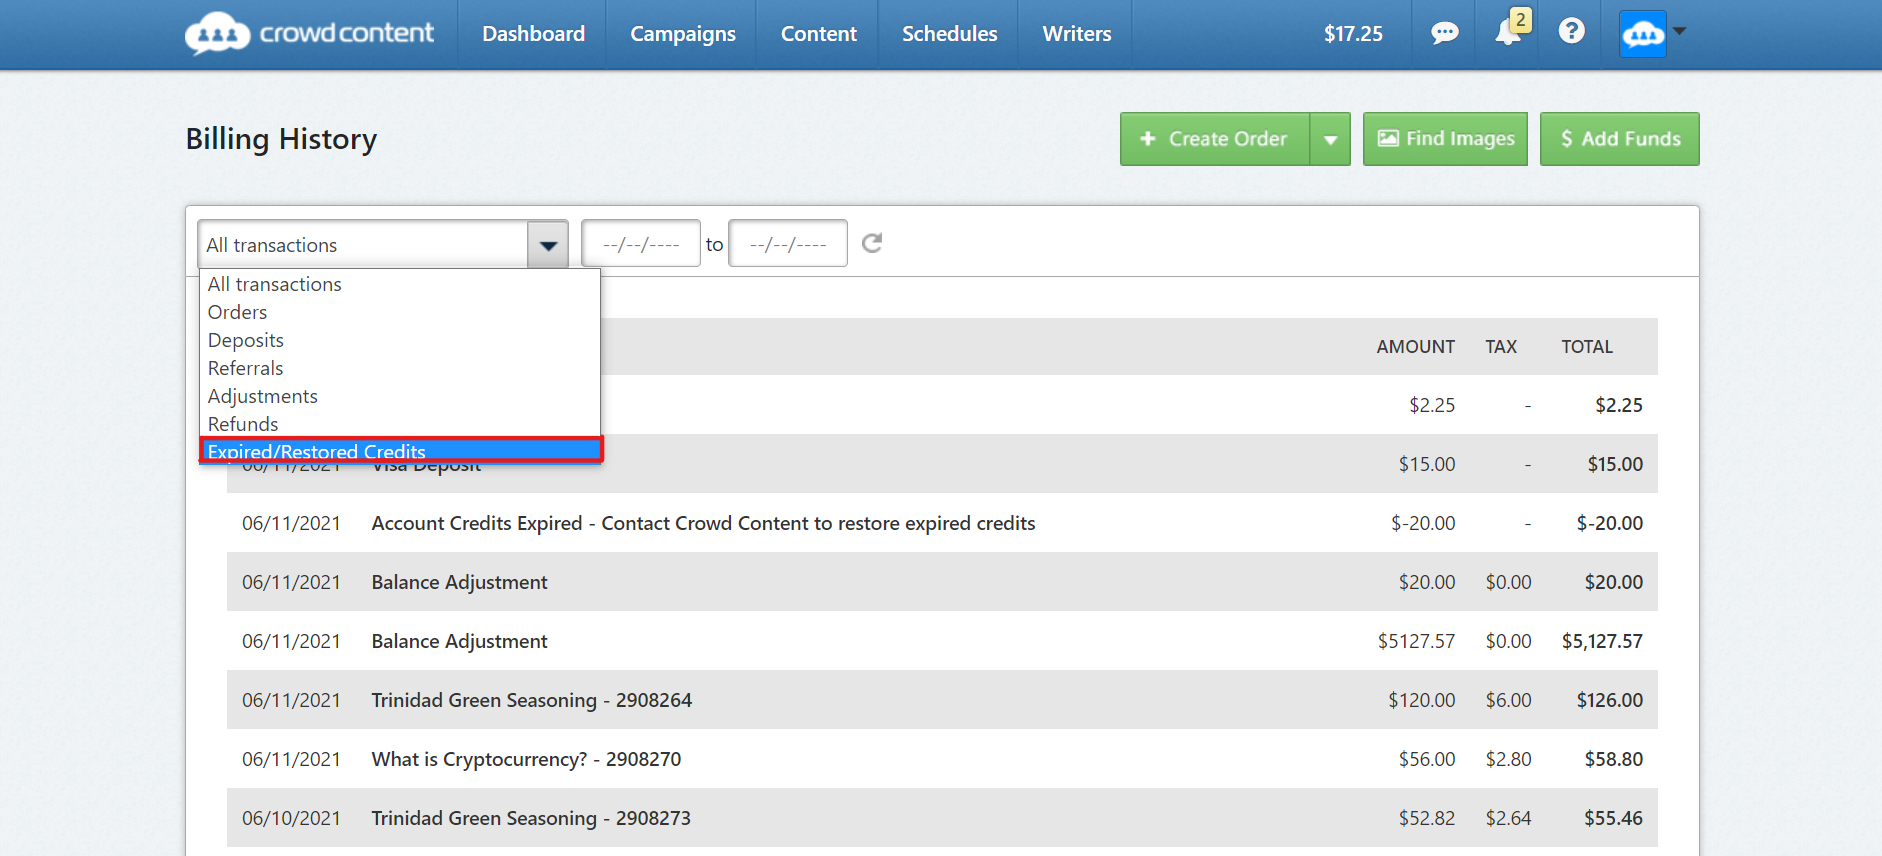 transaction history with drop down menu open. Expired/ reissued credits filter selected